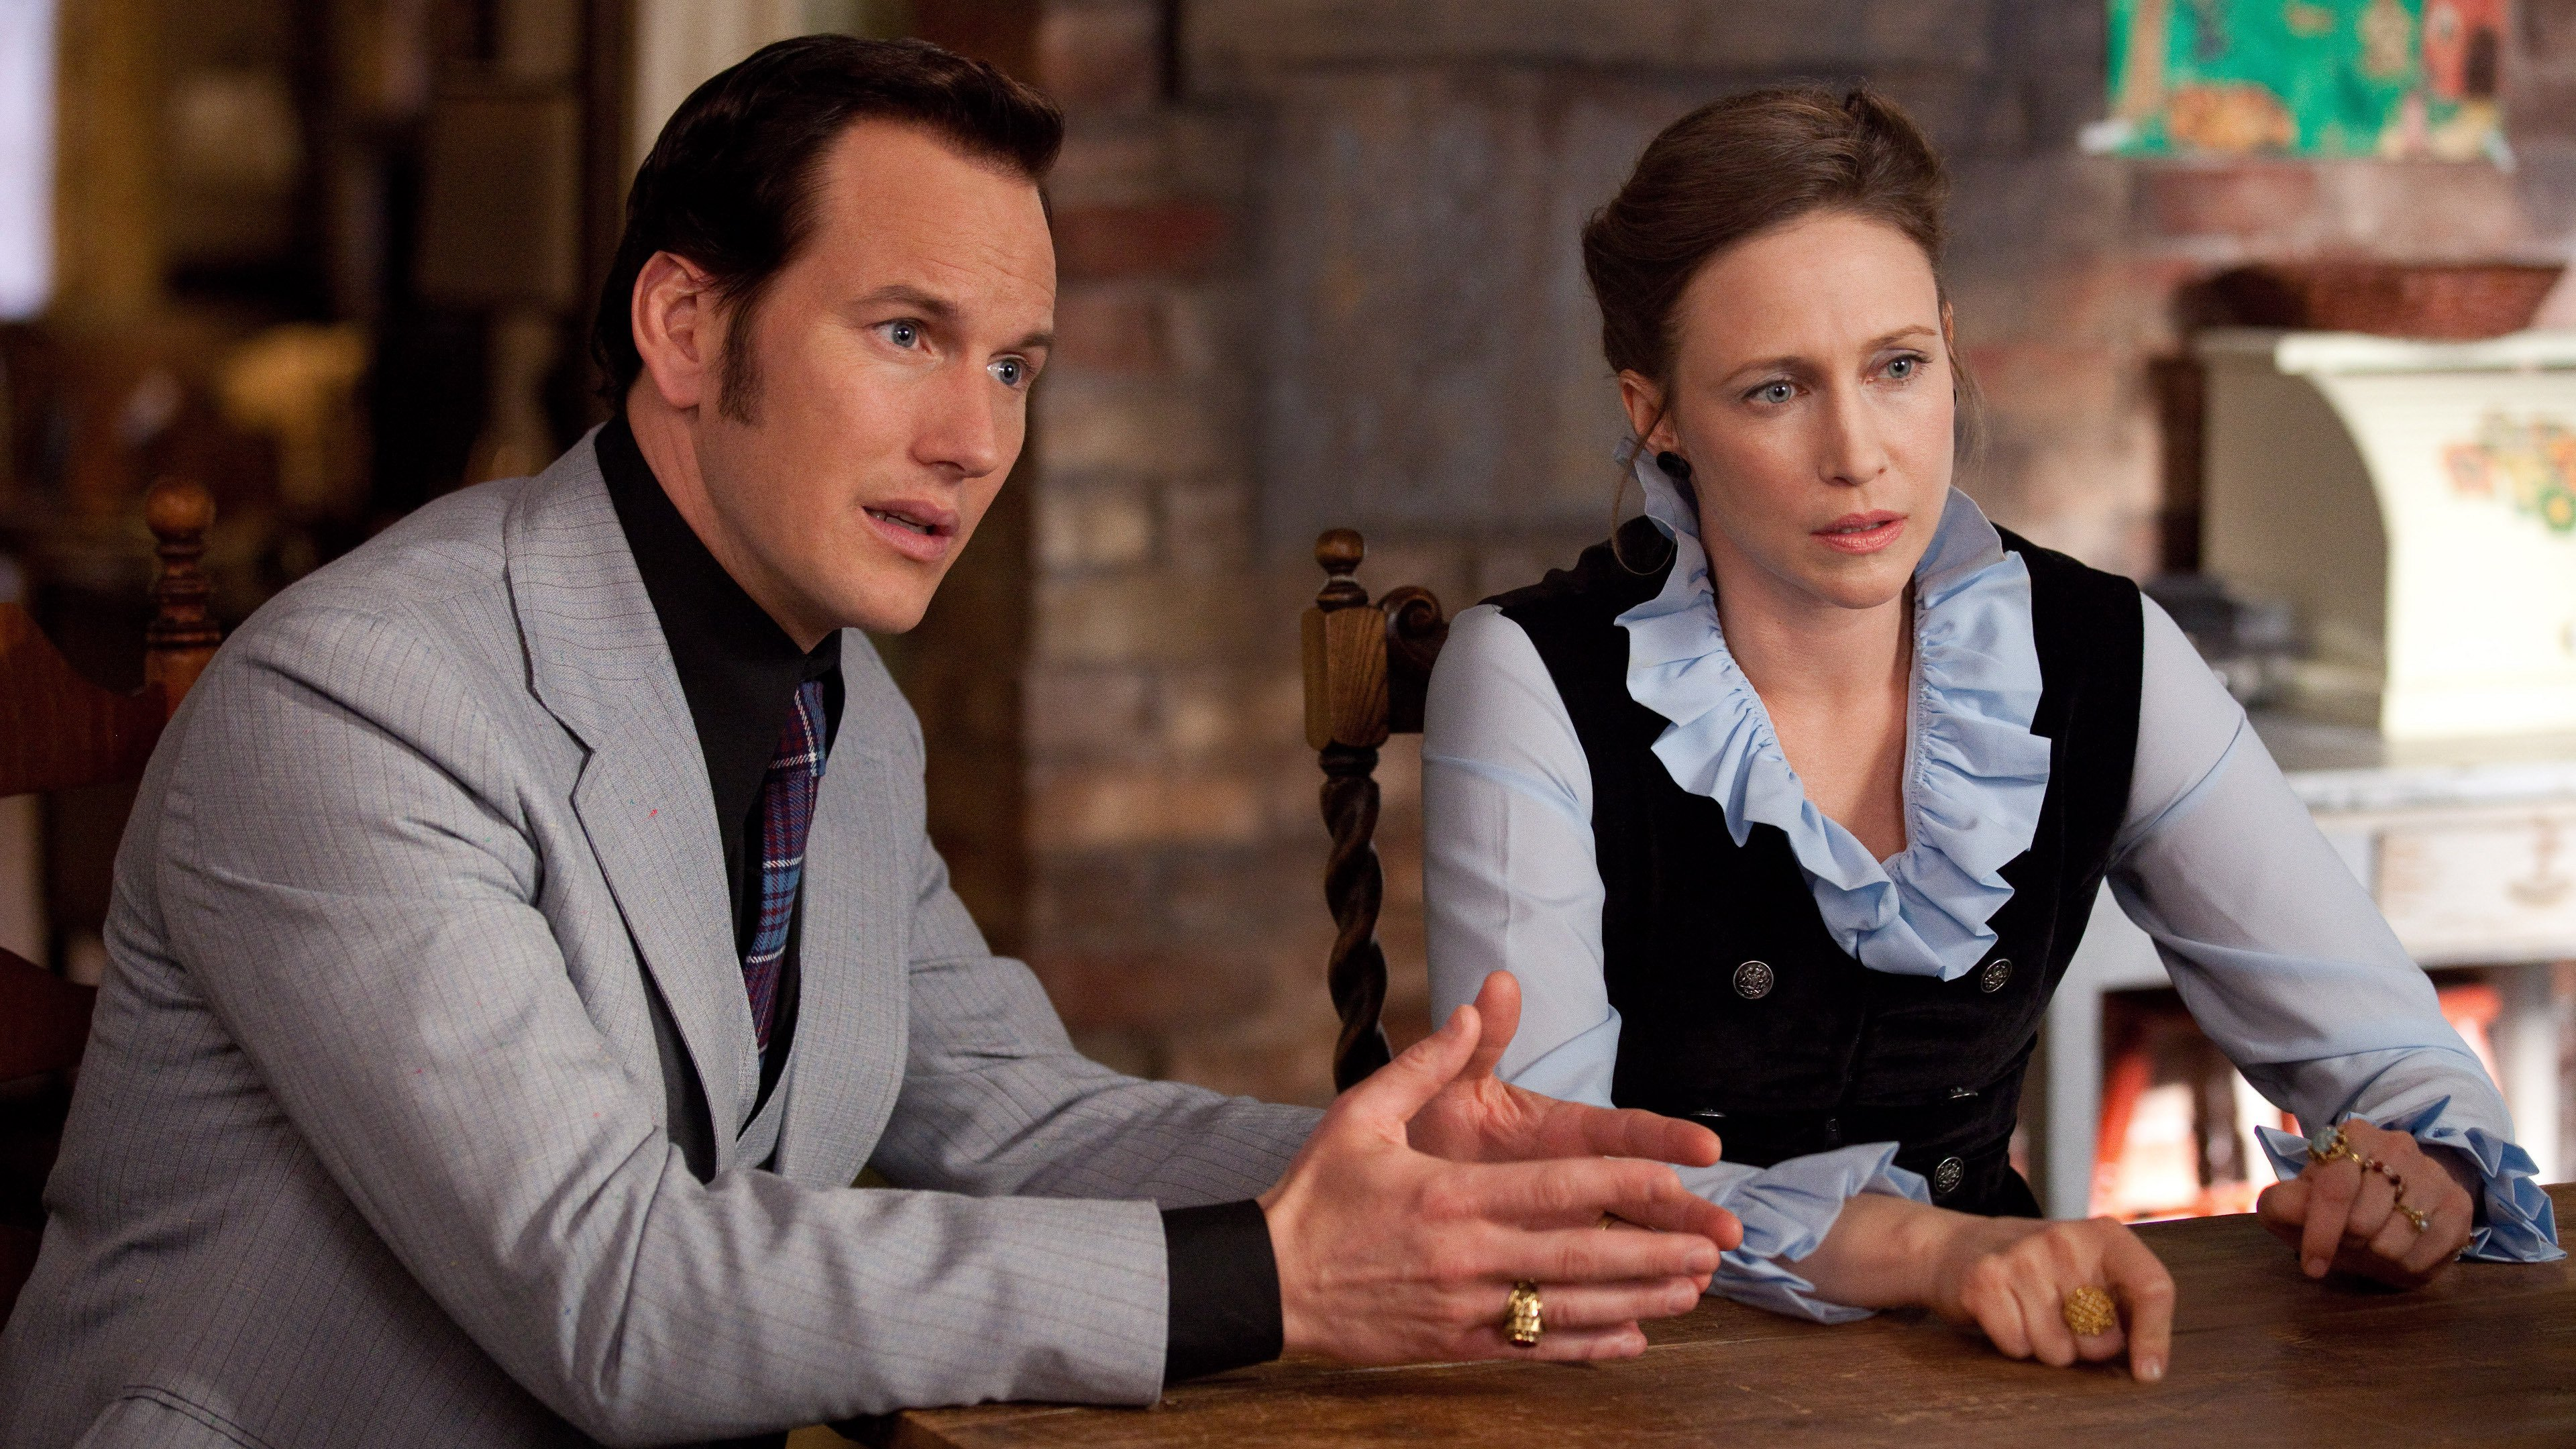 Patrick Wilson and Vera Farmiga to Reprise 'Conjuring' Roles in 'Annabelle 3'